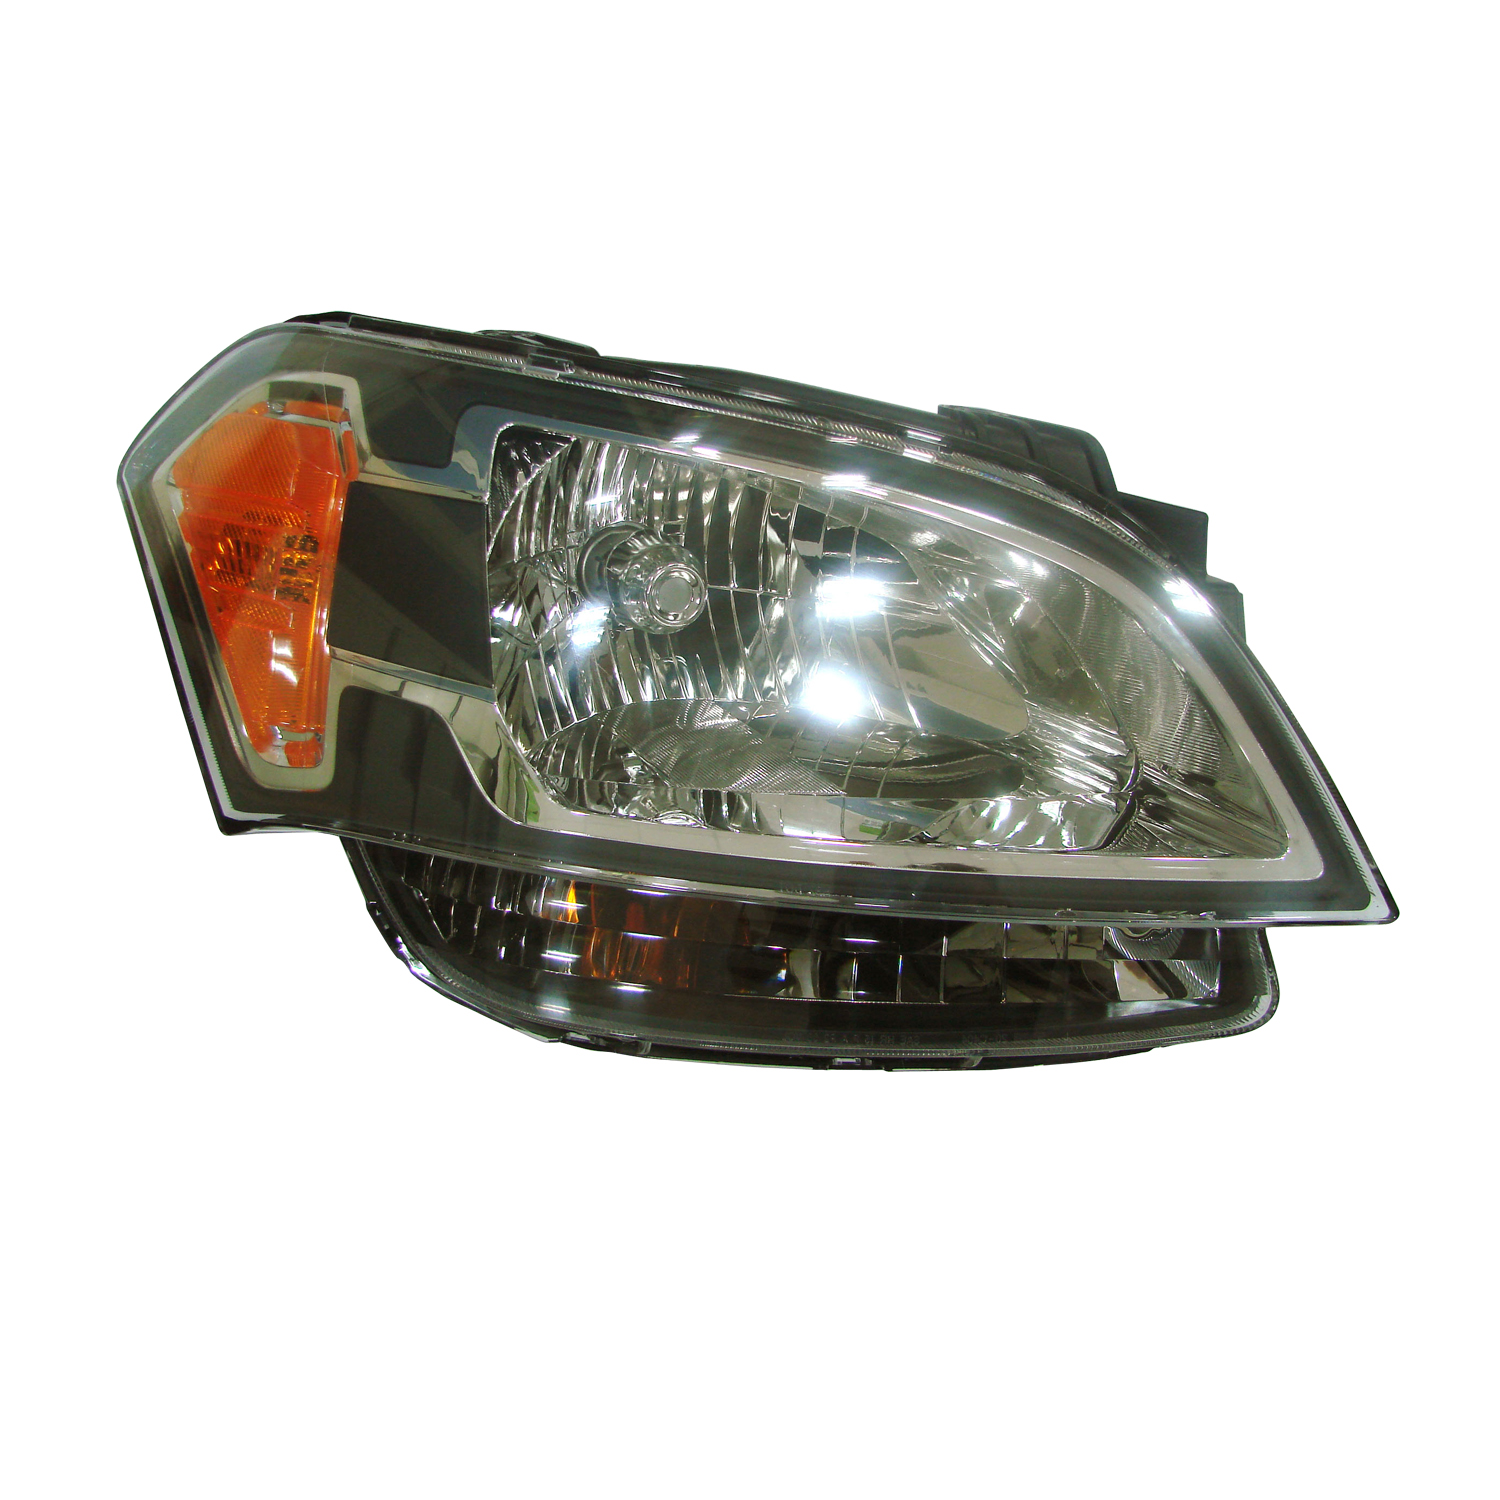 New Aftermarket Passenger Side Front Head Lamp Assembly 921022K030 NSF